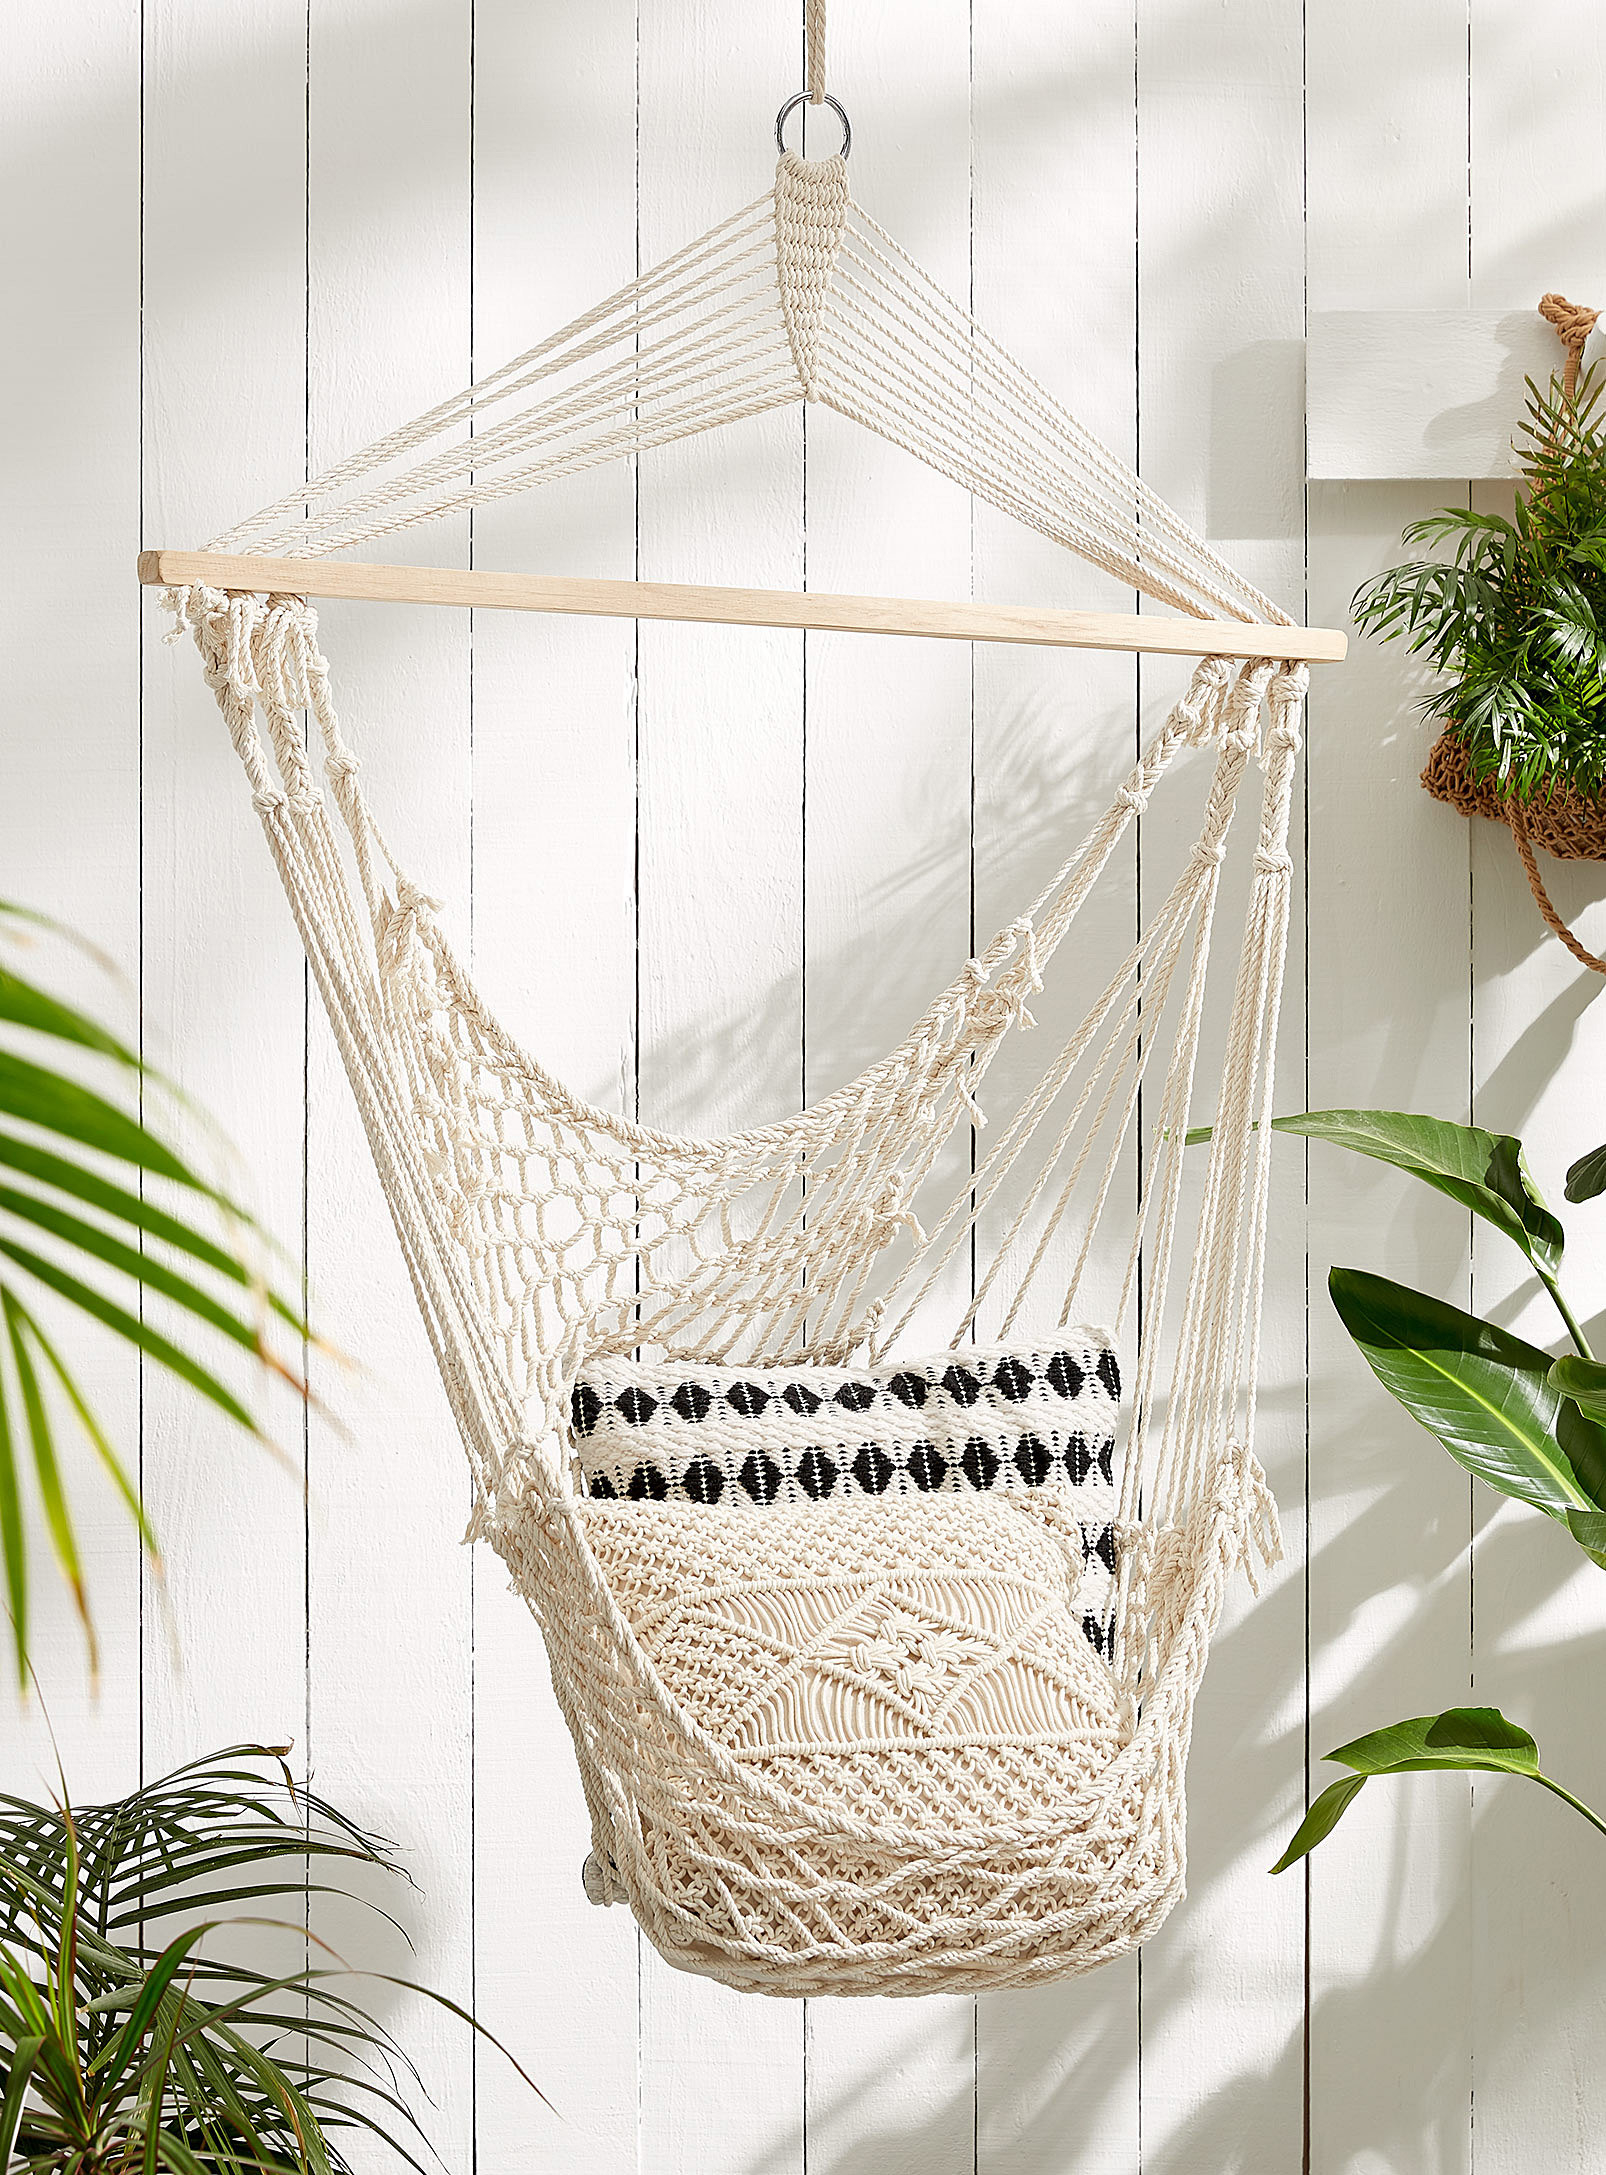 A crocheted chair hangs indoors